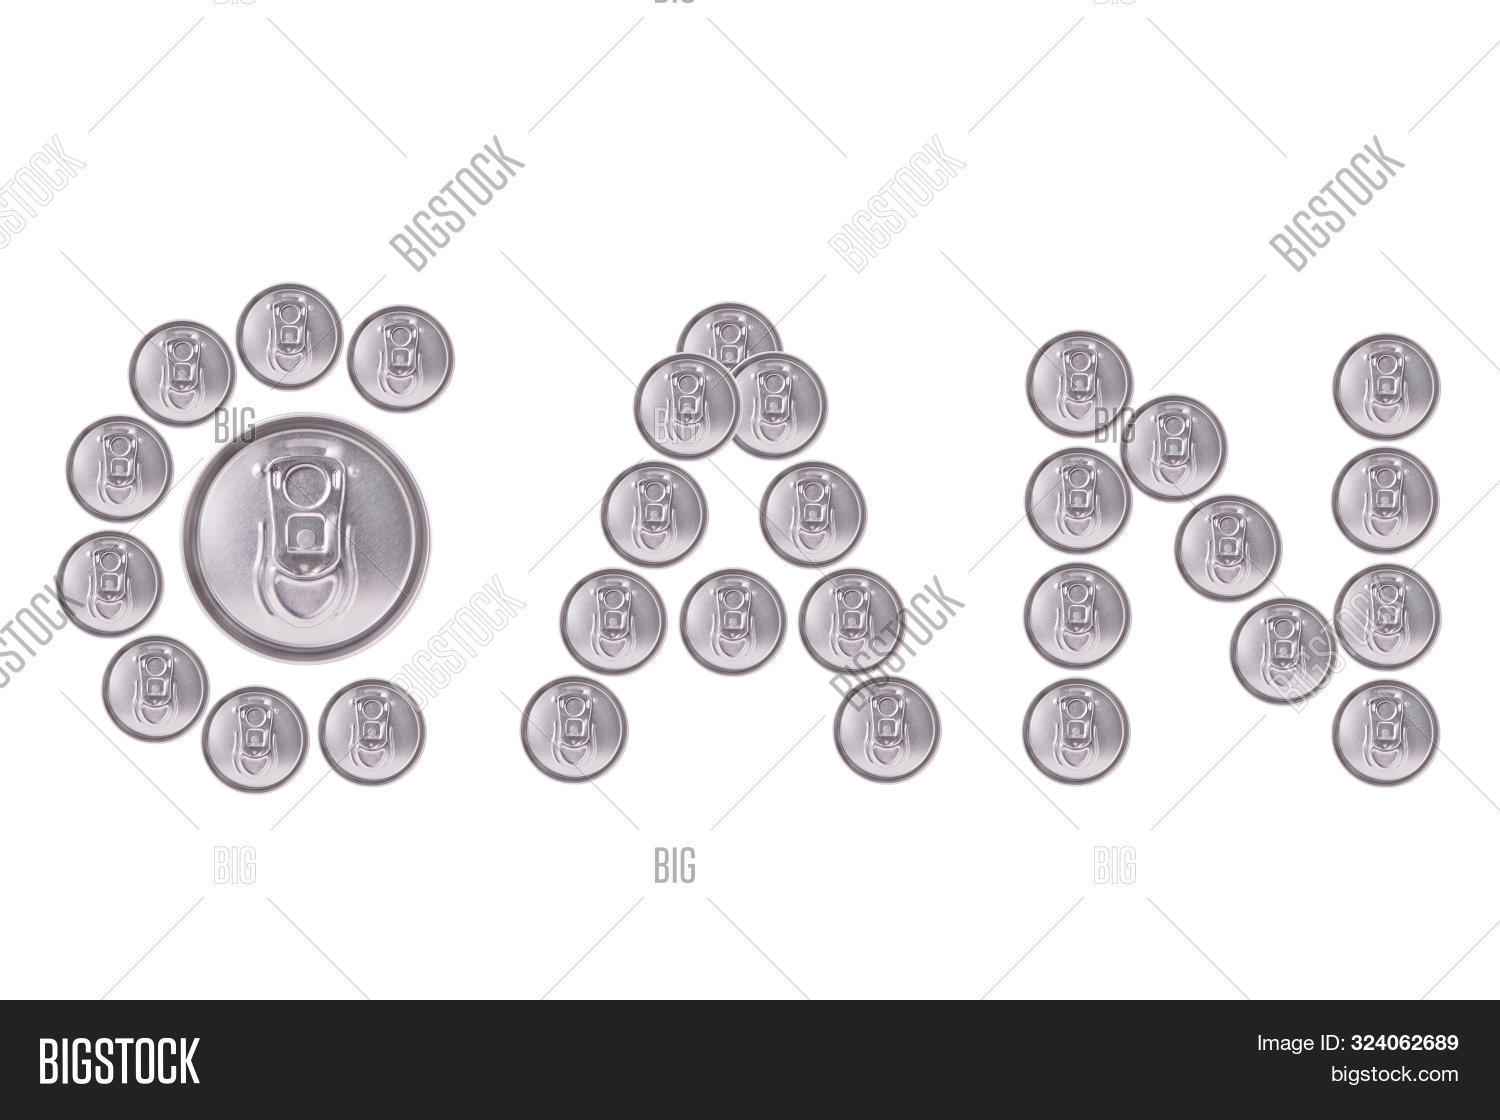 alcohol,aluminum,background,beer,beverage,can,canned,closeup,cola,cold,concept,container,cool,drink,factory,foil,food,industry,isolated,laid,material,metal,metallic,out,recycle,reflection,ring,shiny,silver,soda,soft,top,view,white,word